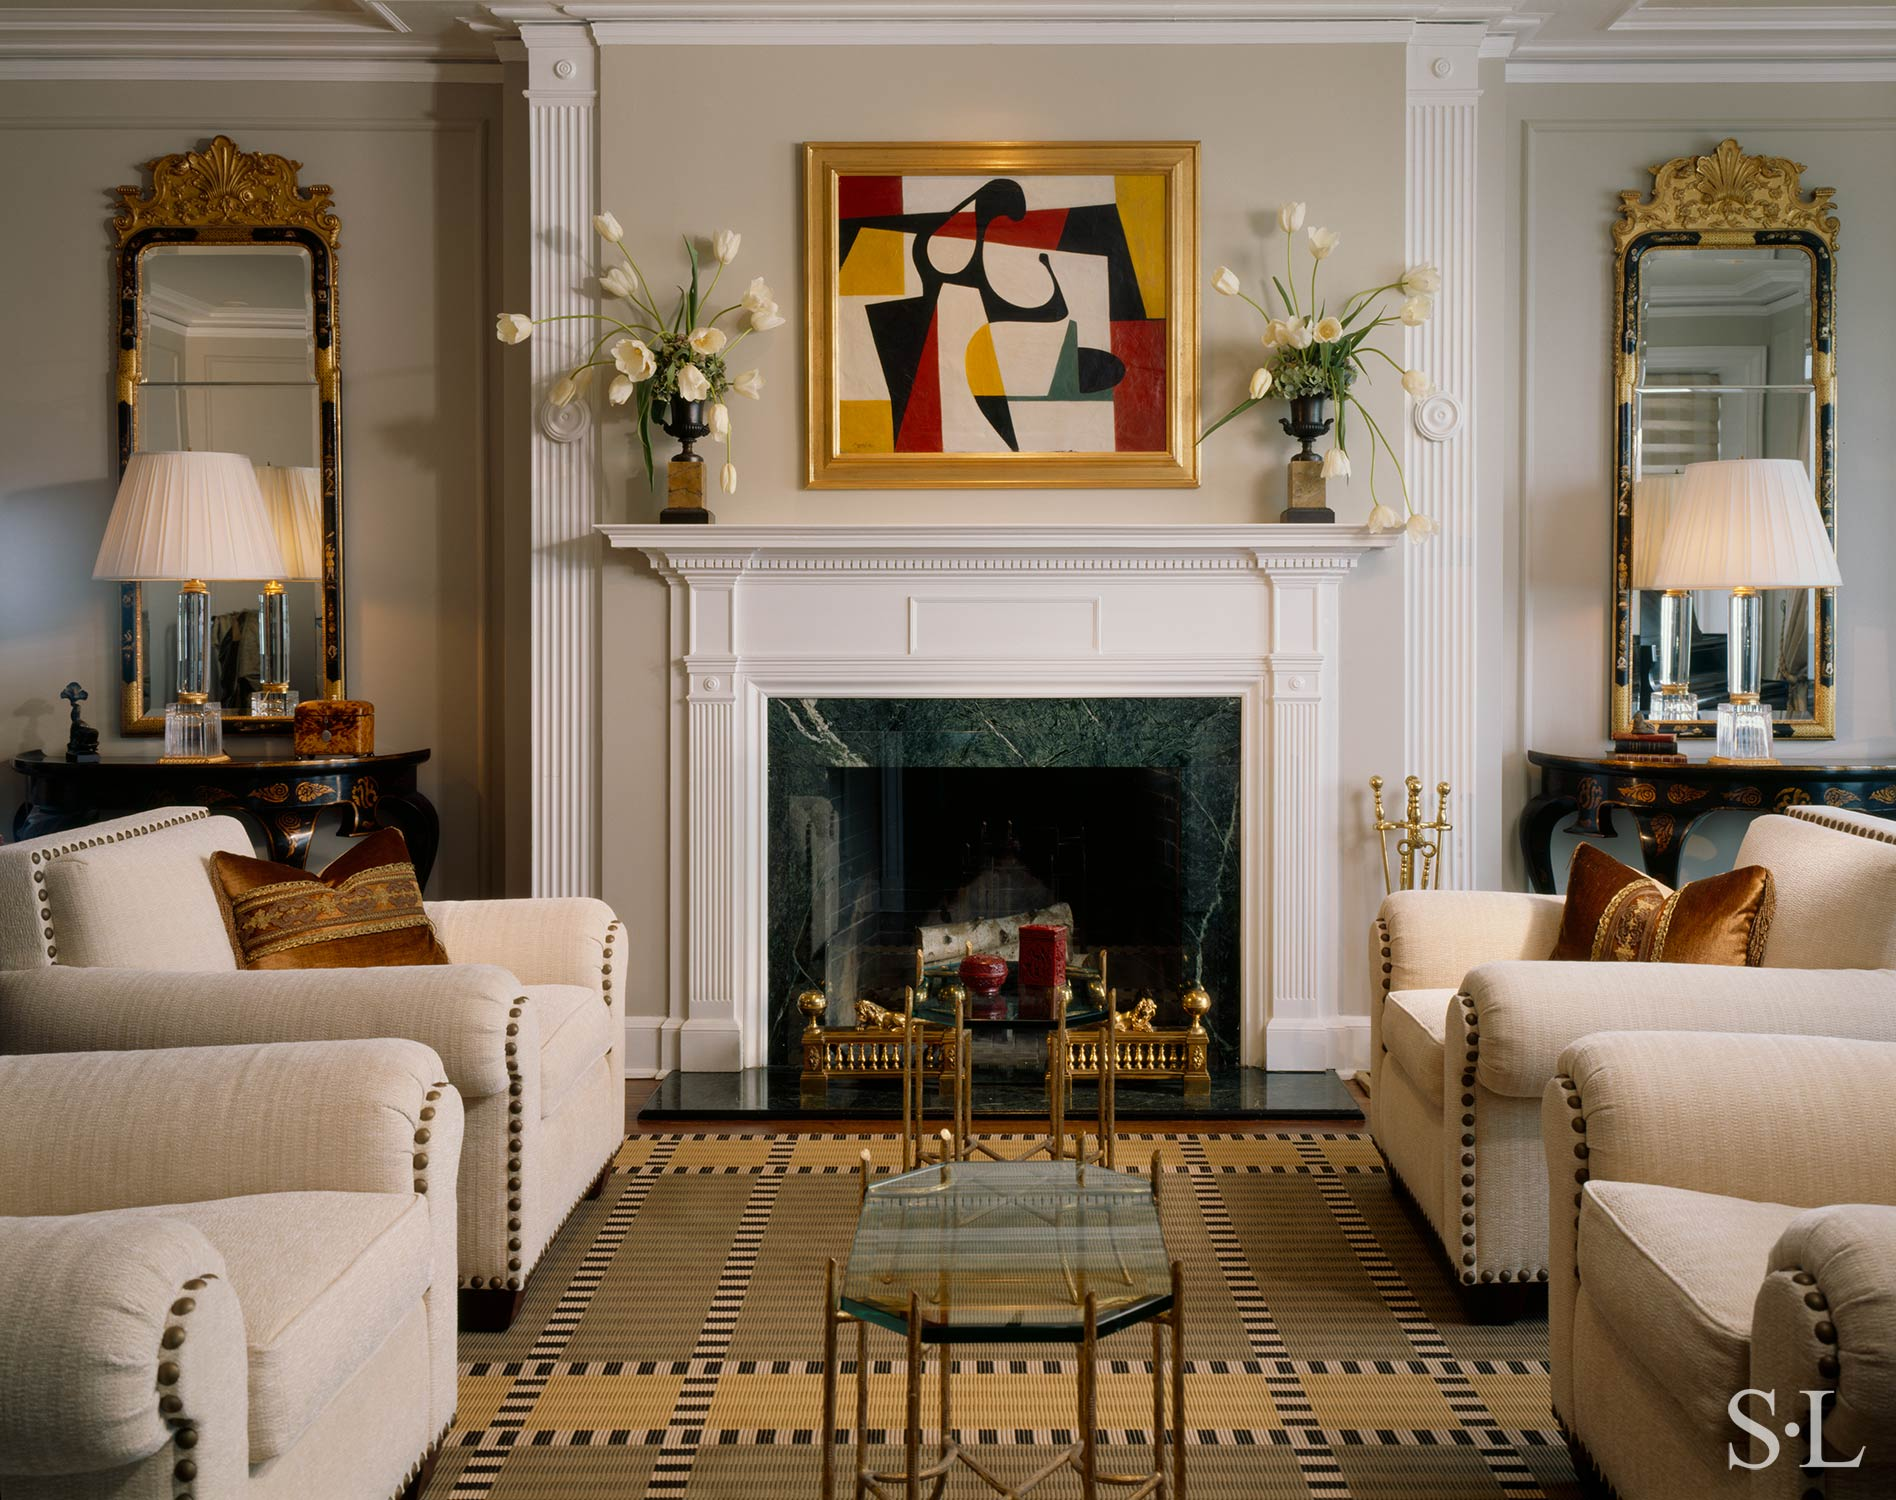 custom rolled arm lounge chairs & decorative throw pillows  Interior Architecture & Design: Suzanne Lovell, Inc.